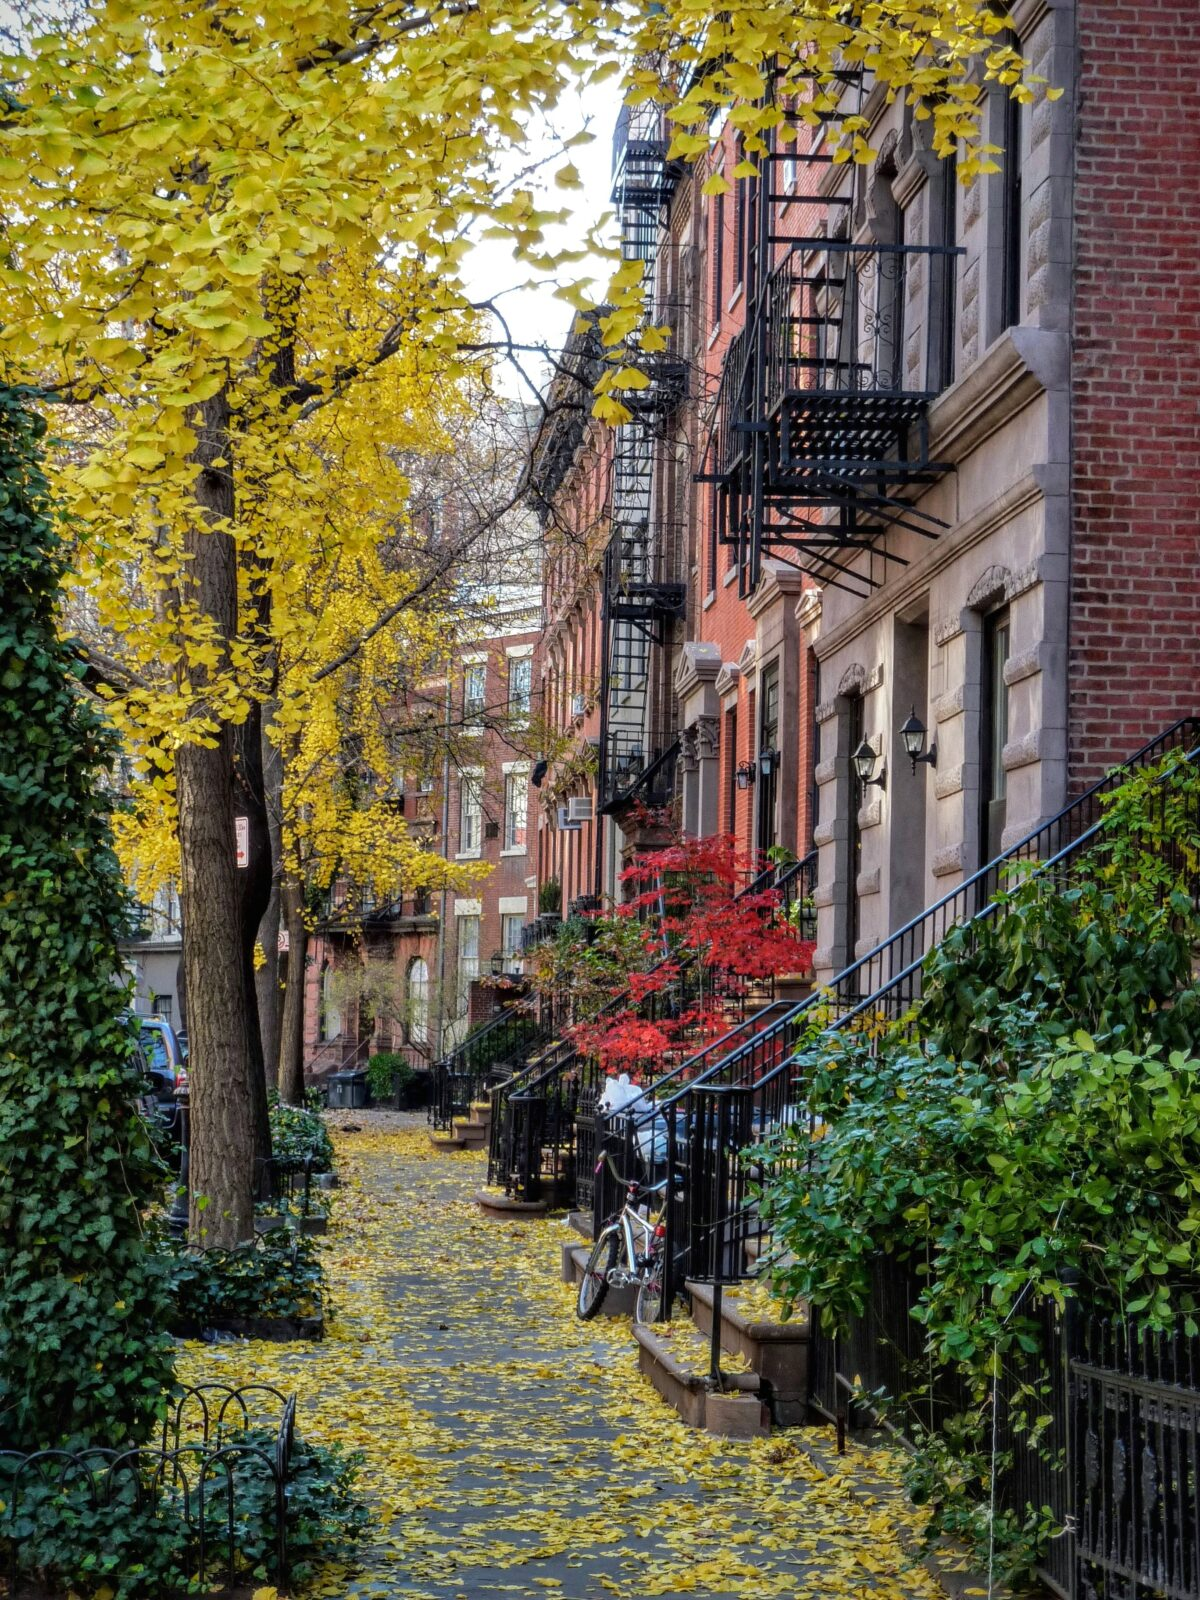 greenwich village street with historic old homes and brownstones